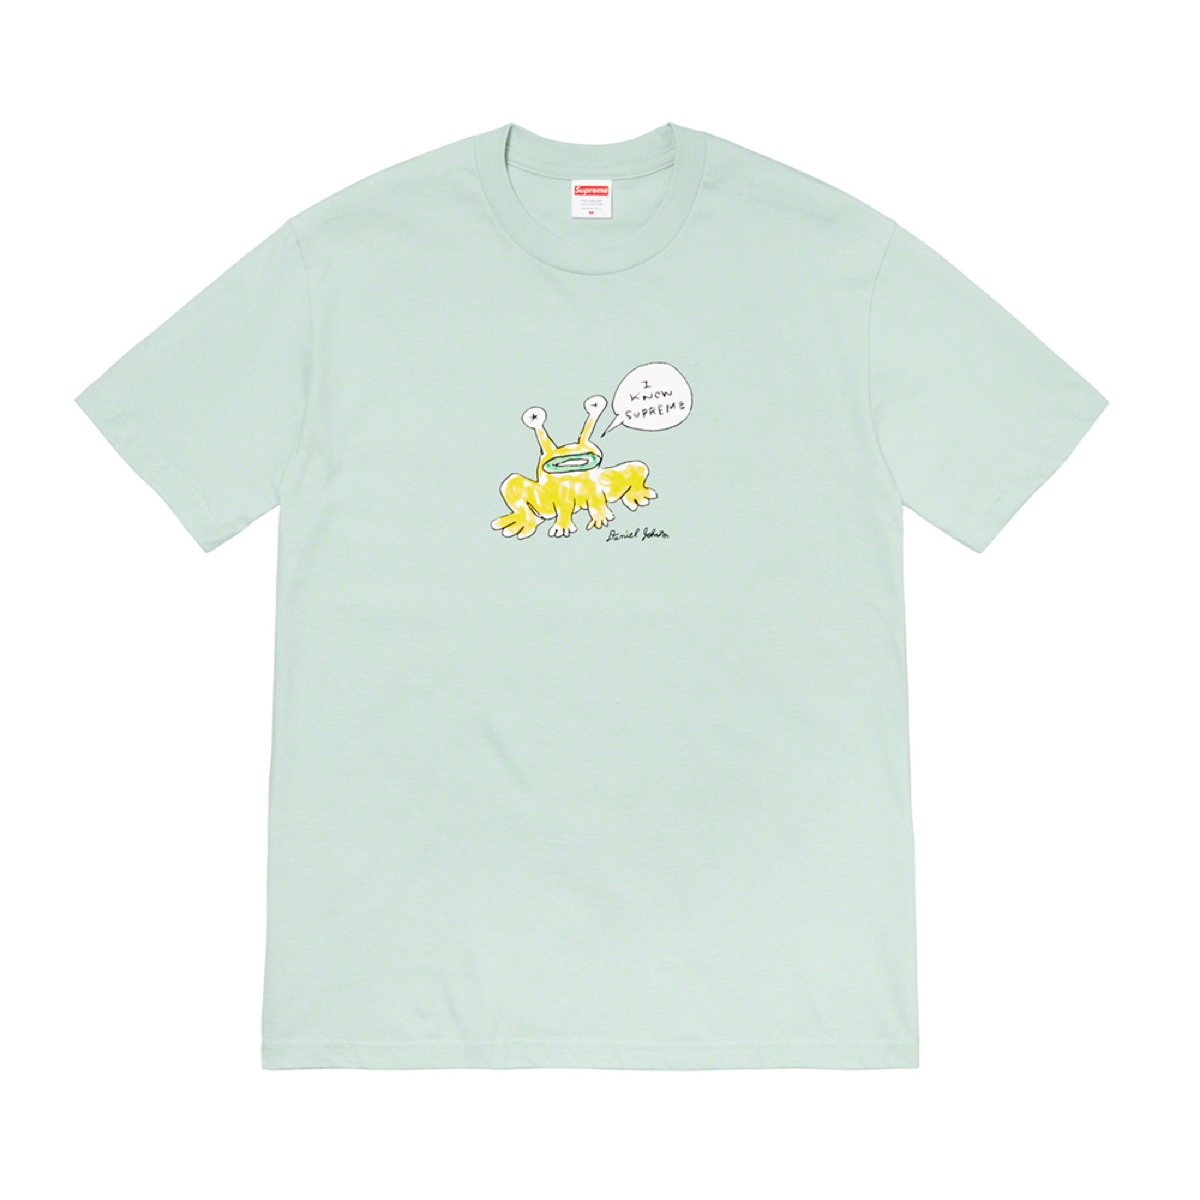 Supreme Daniel Johnston Frog Teal